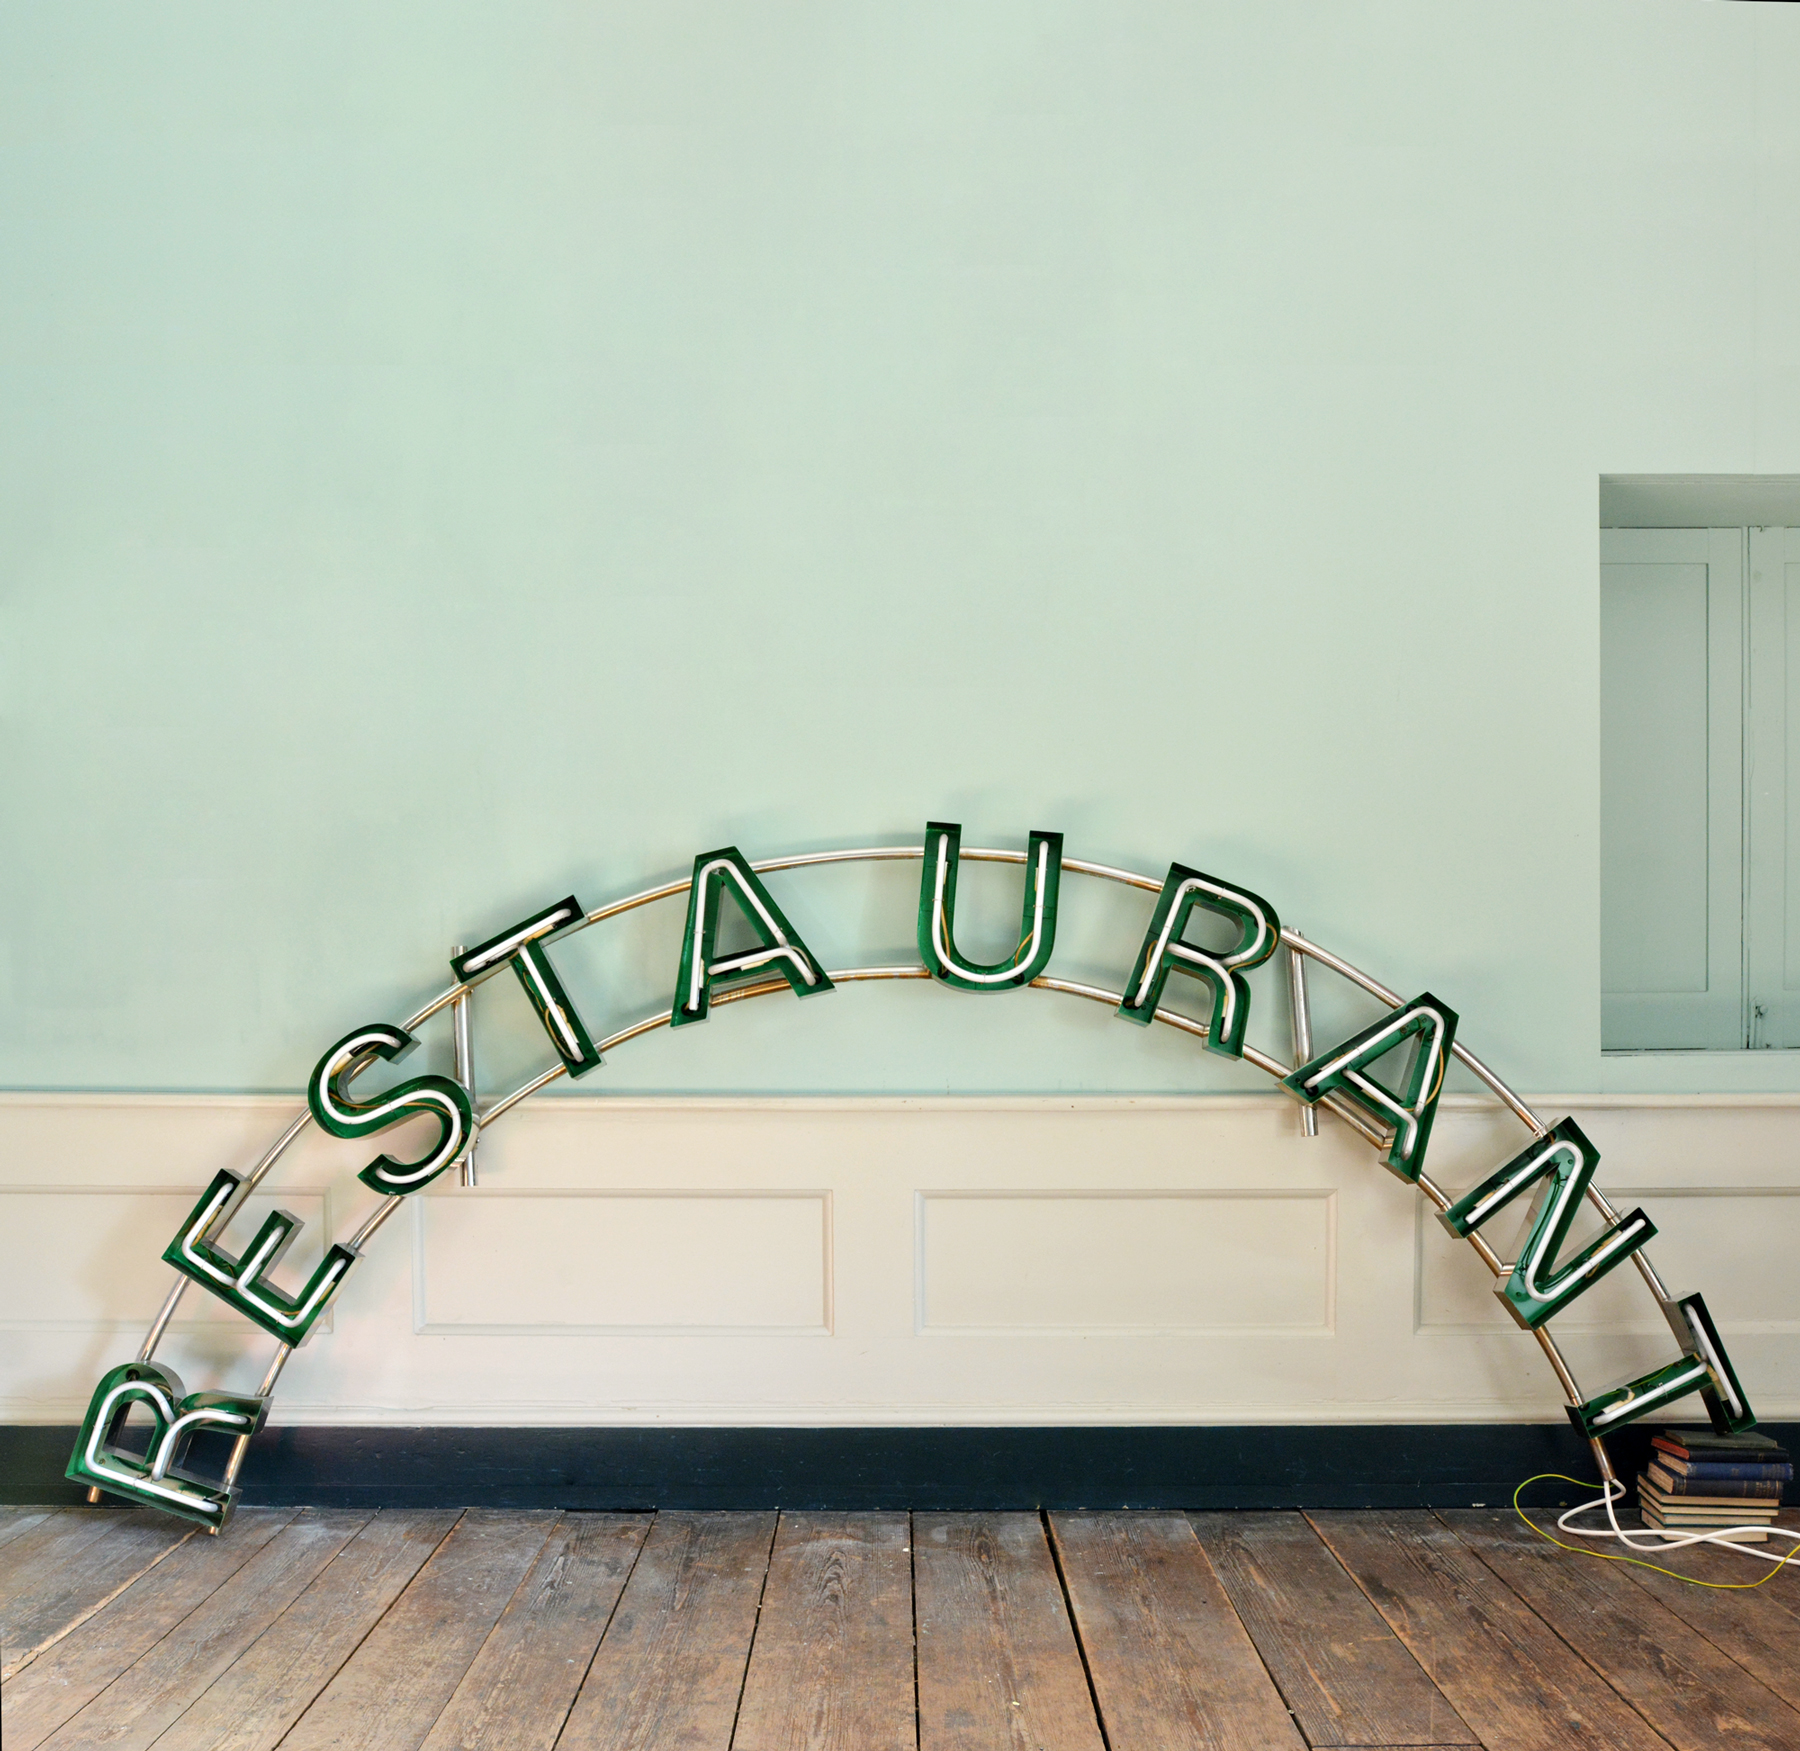 Chrome and neon 'Restaurant' sign